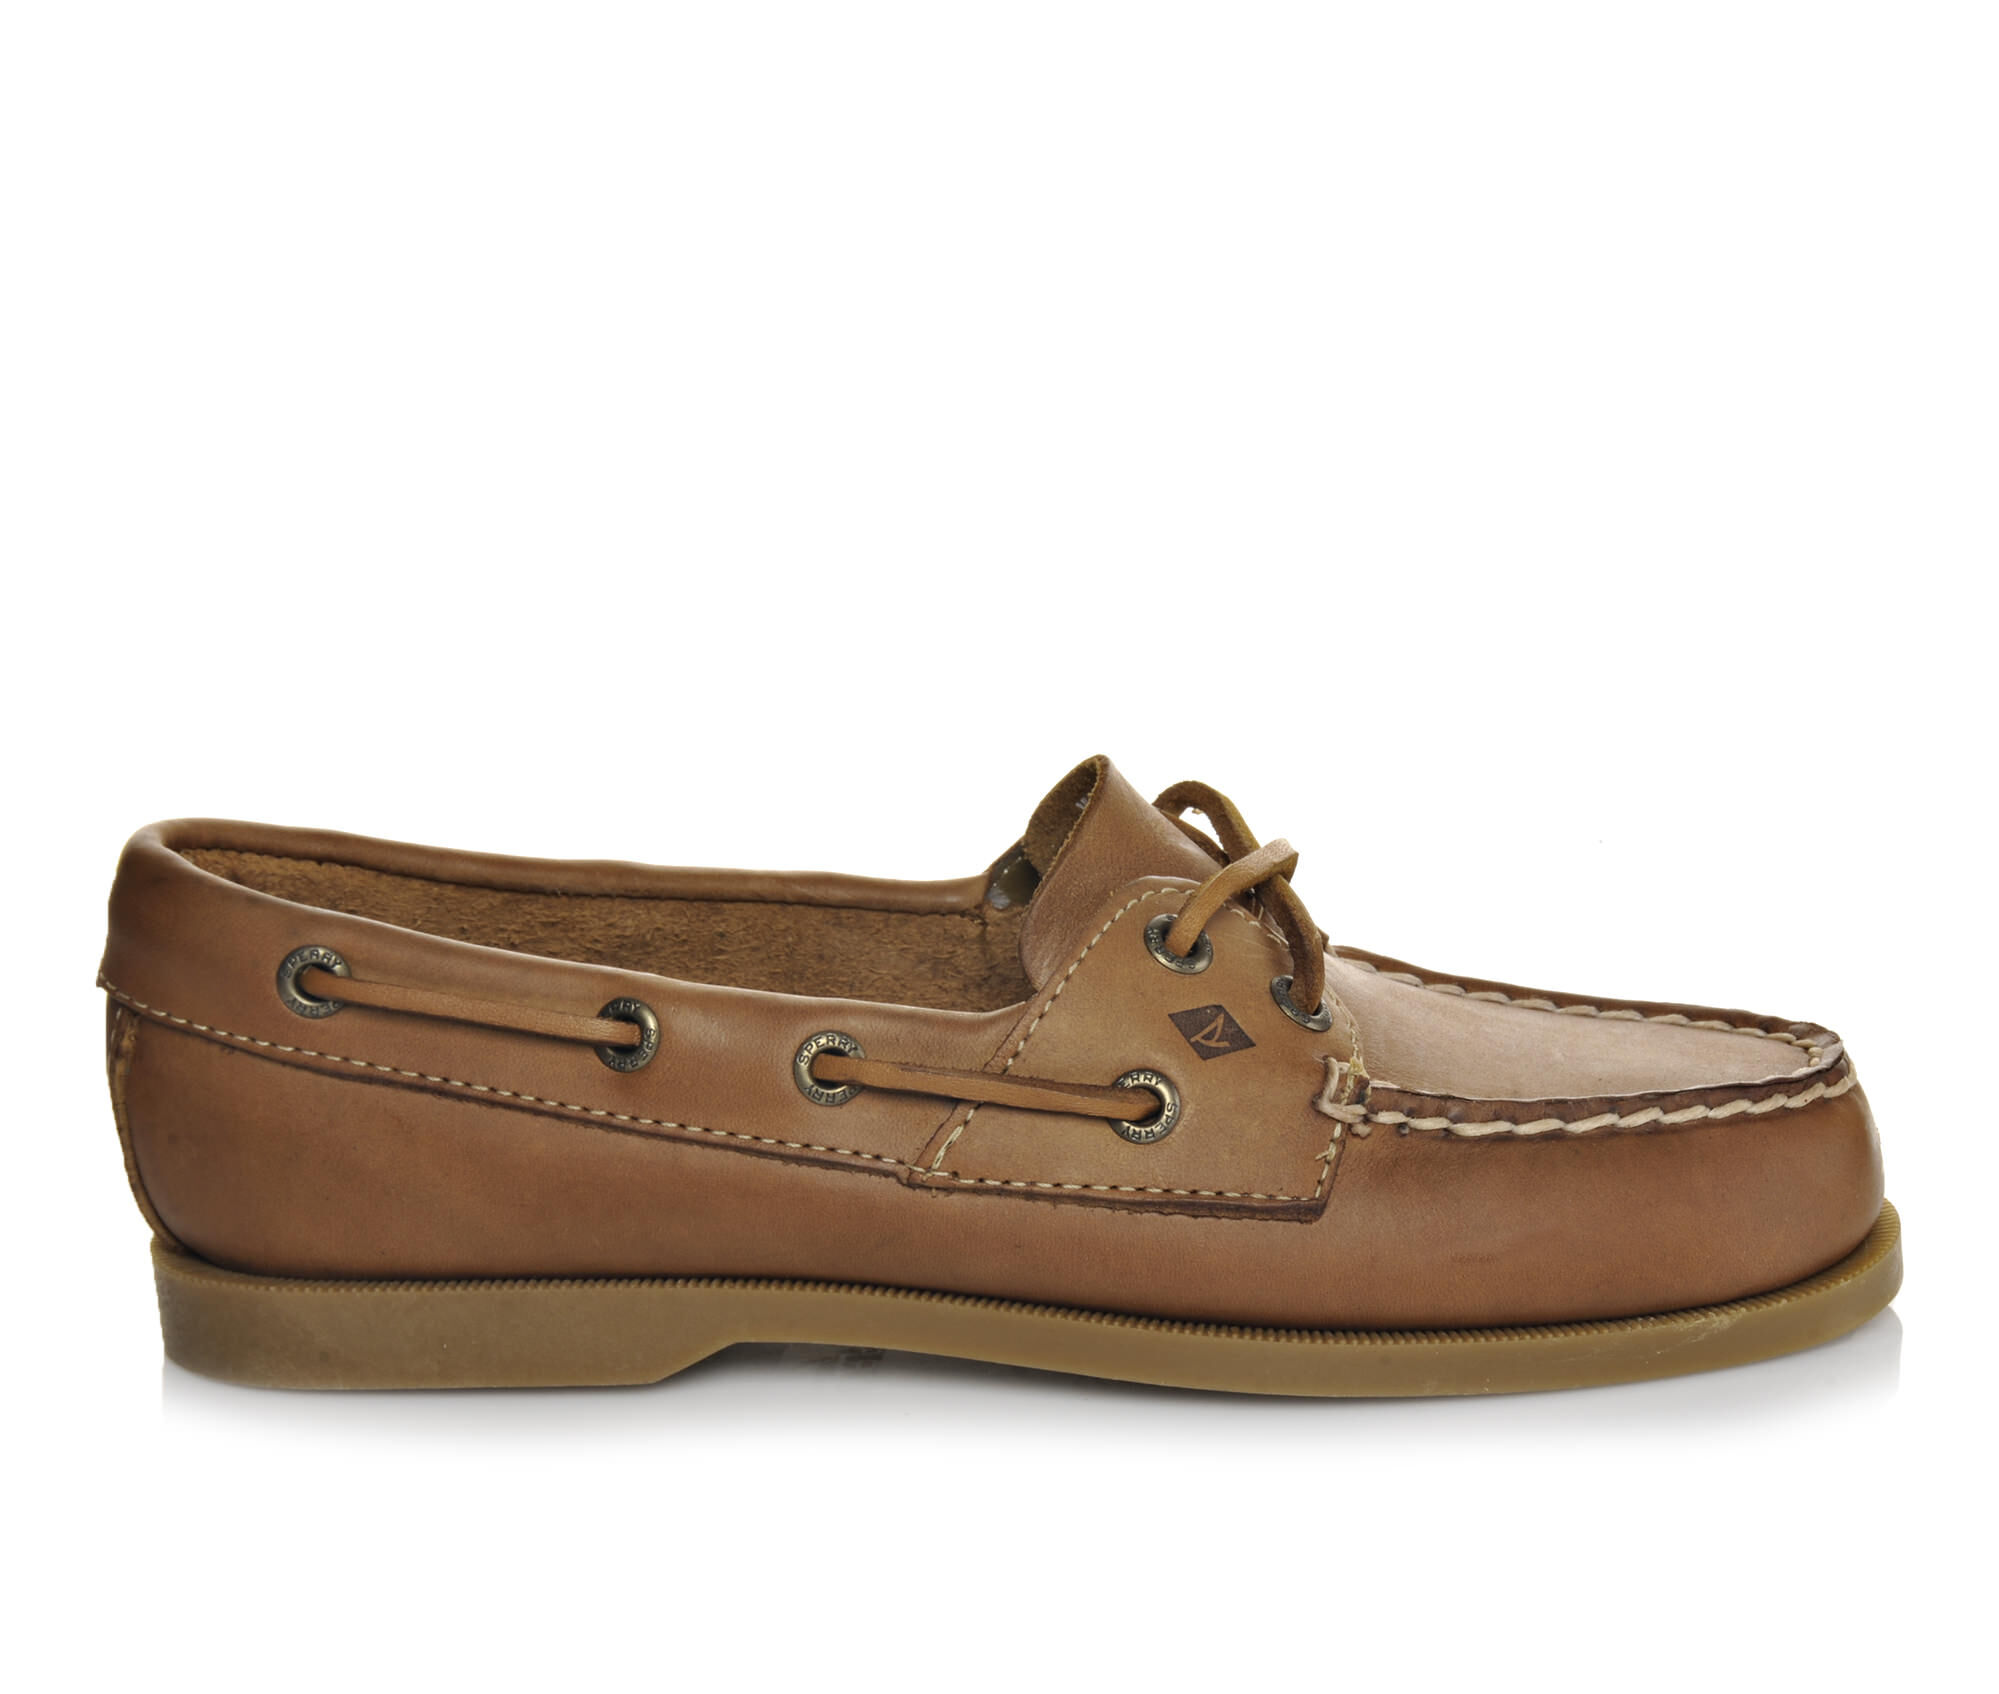 Womens Size 11 Wide Boat Shoes - Best